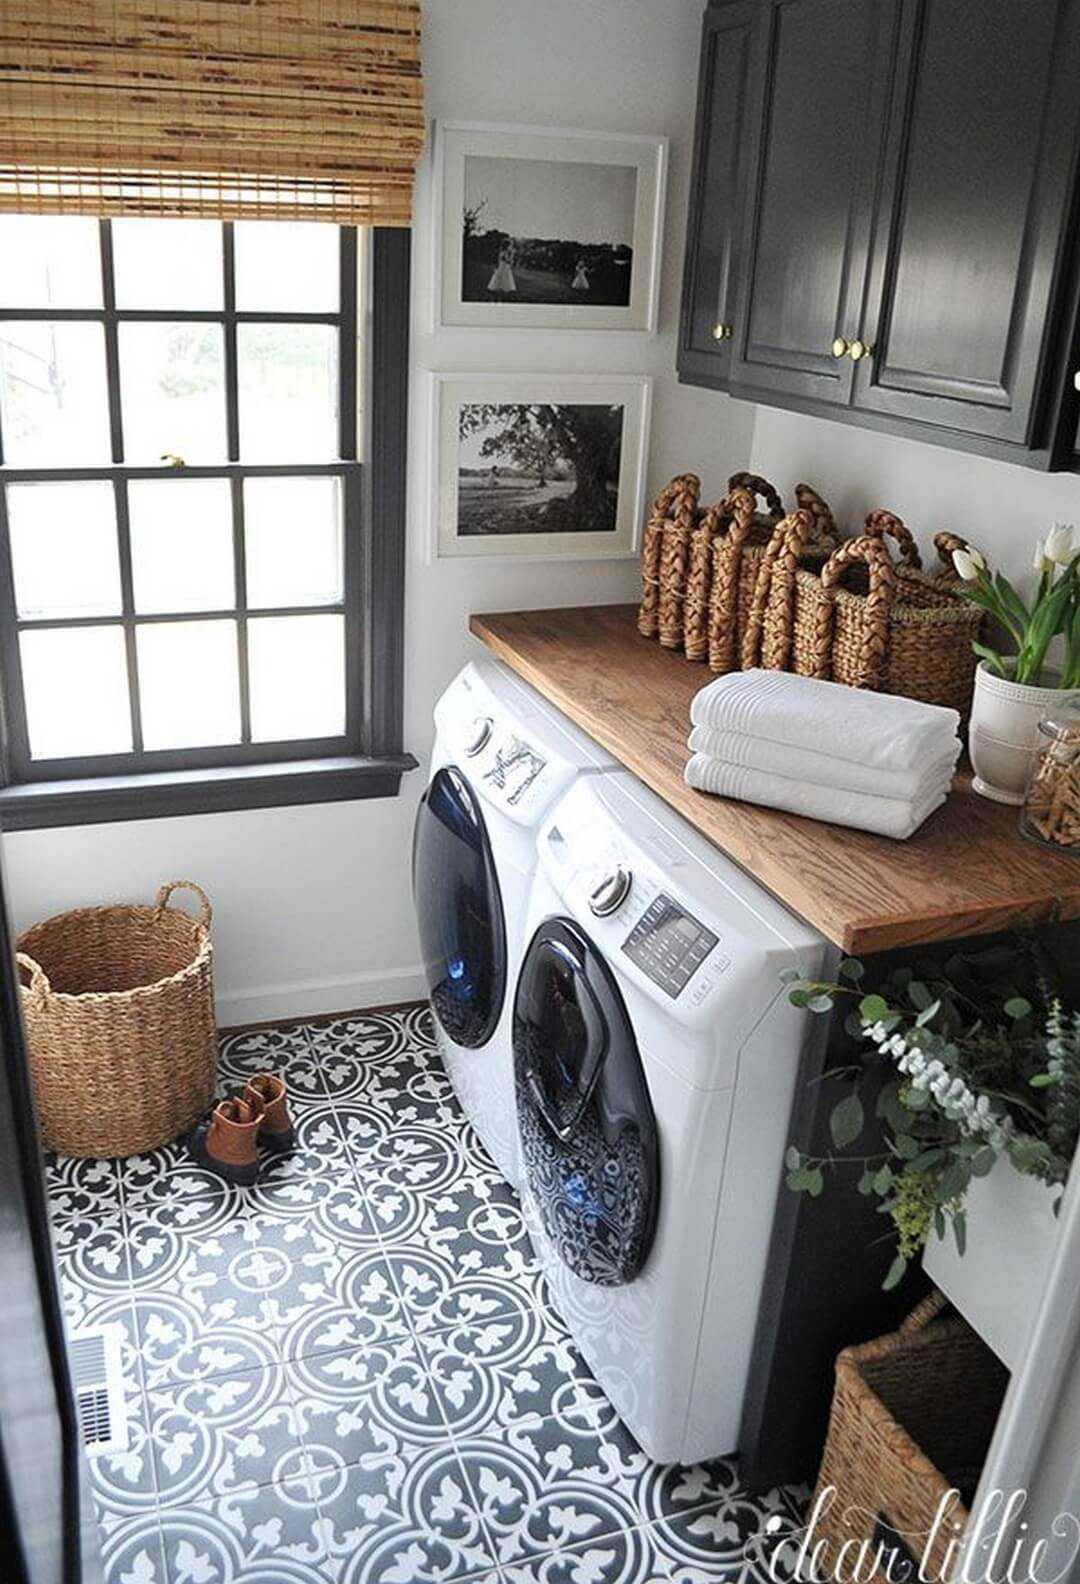 28 Best Small Laundry Room Design Ideas for 2020 on Laundry Room Decor Ideas  id=81093